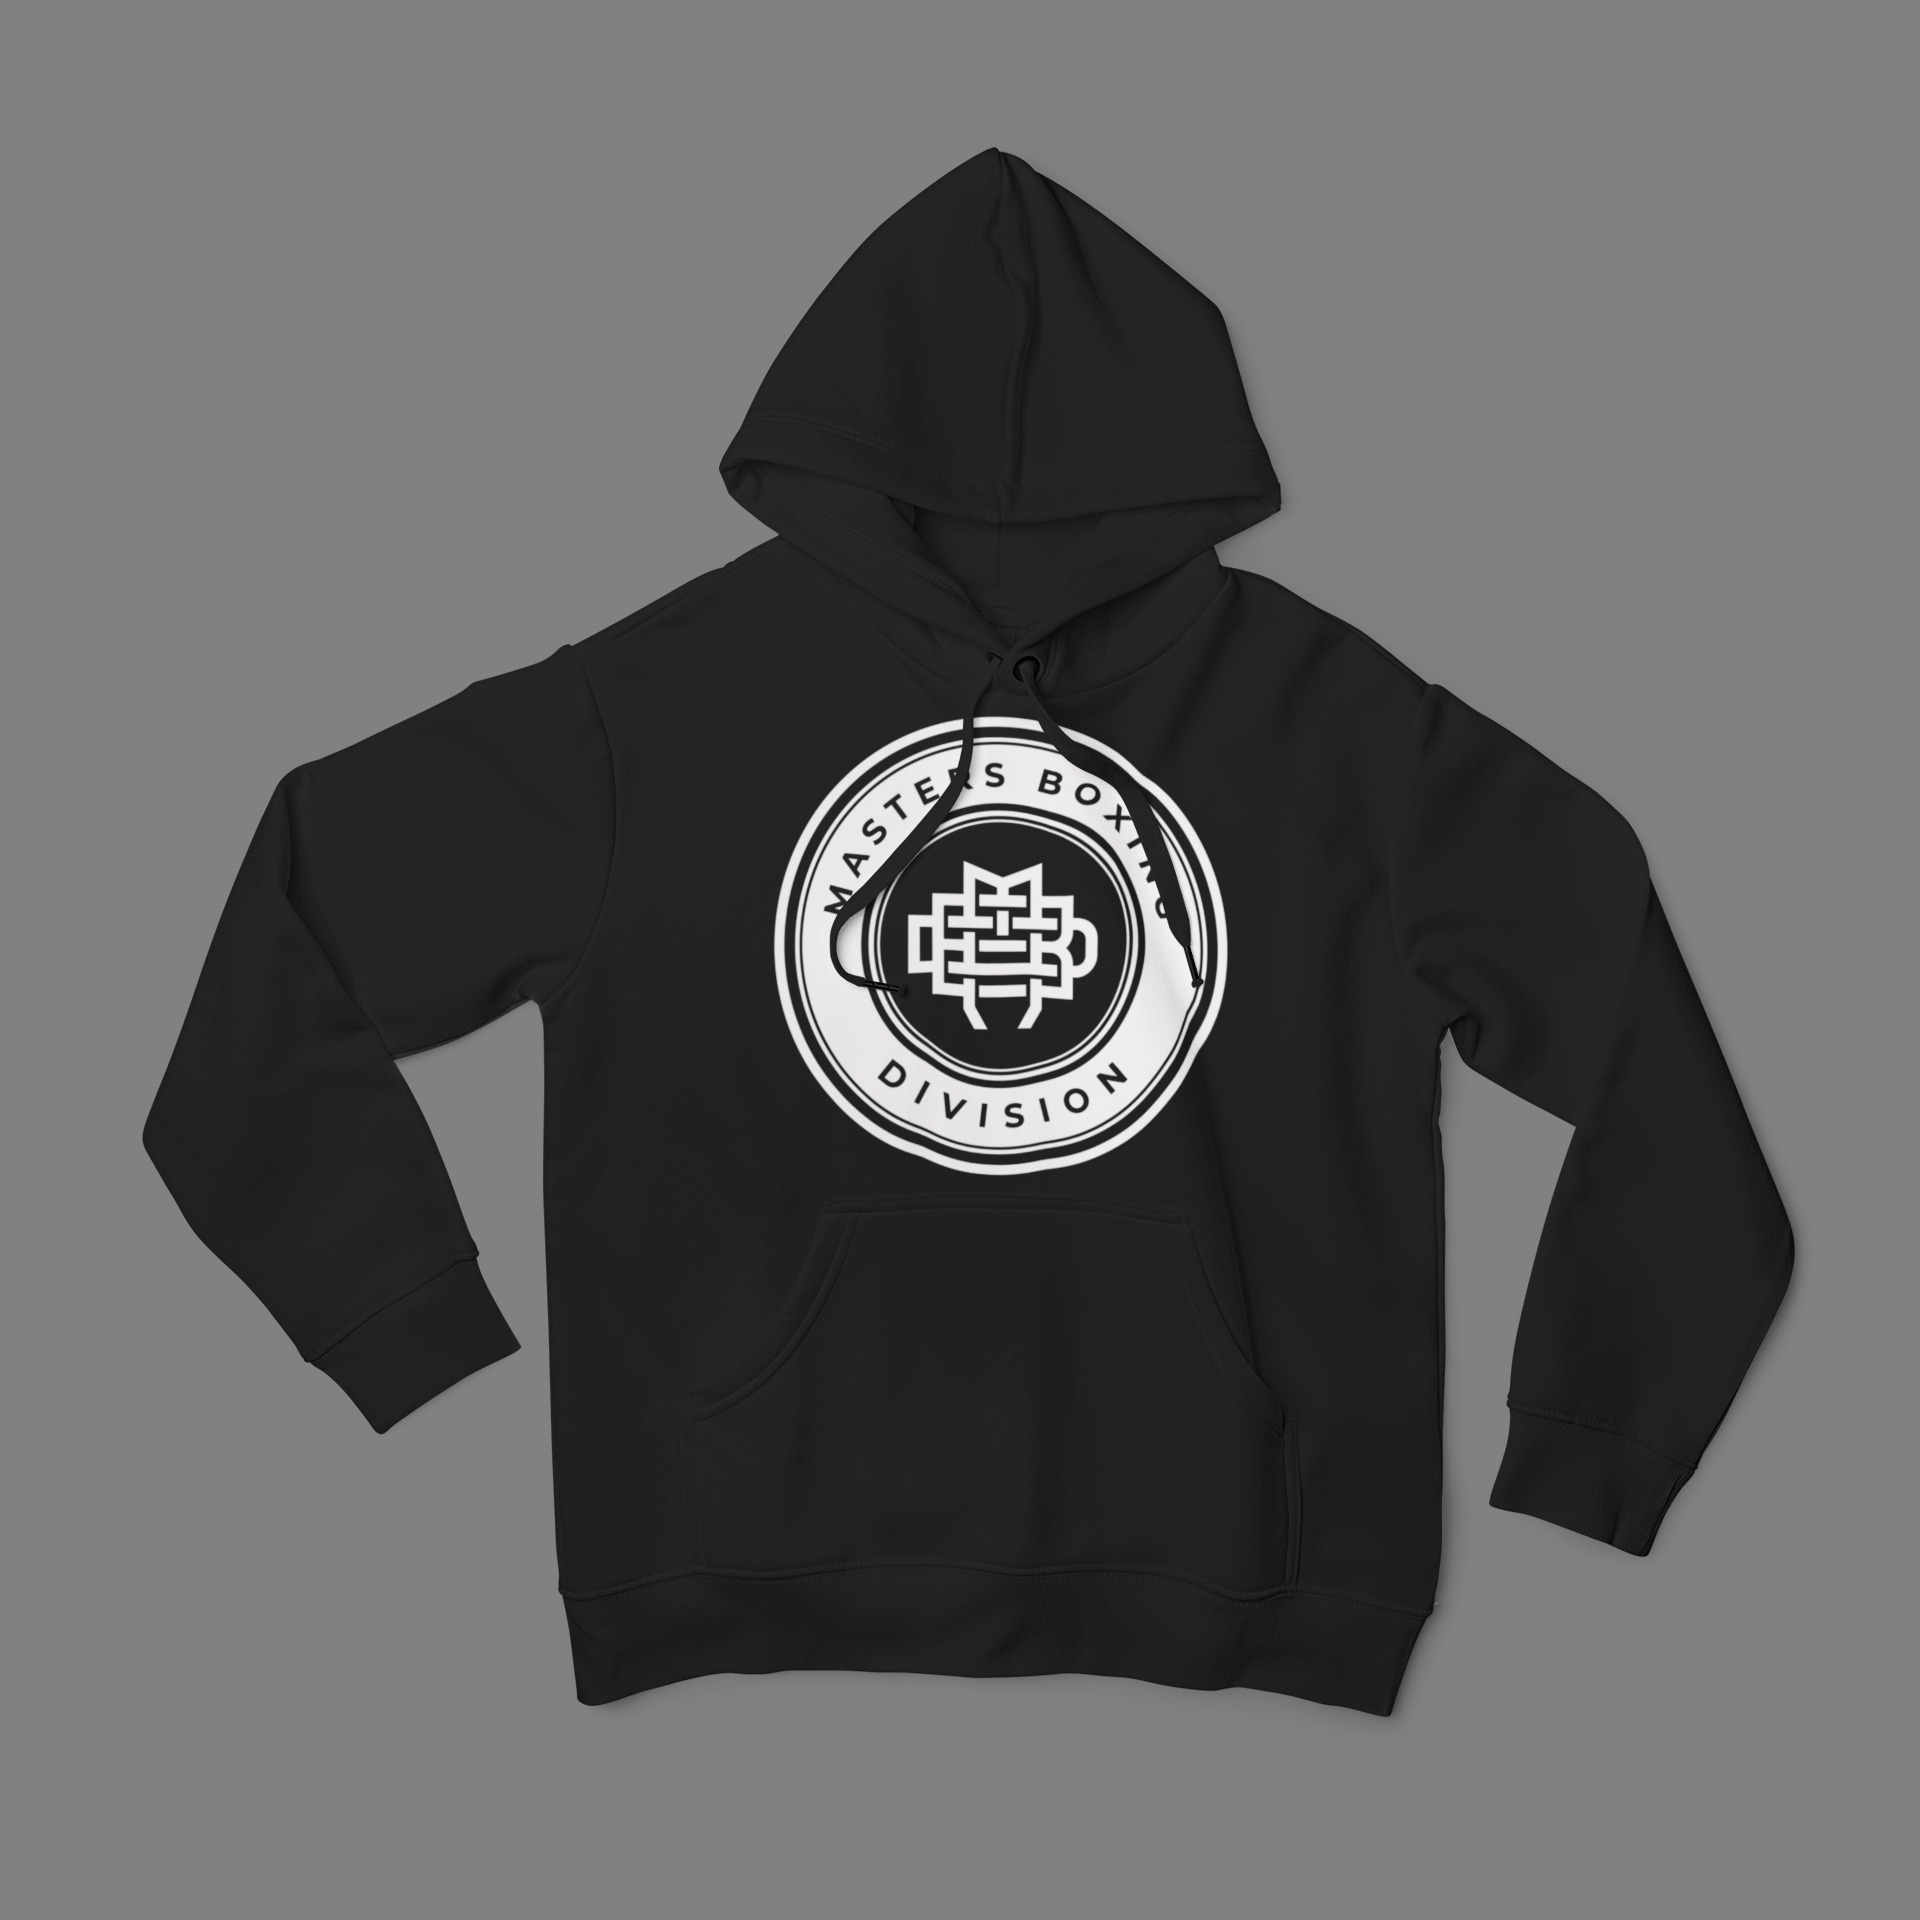 MBD White on Black Hoodie